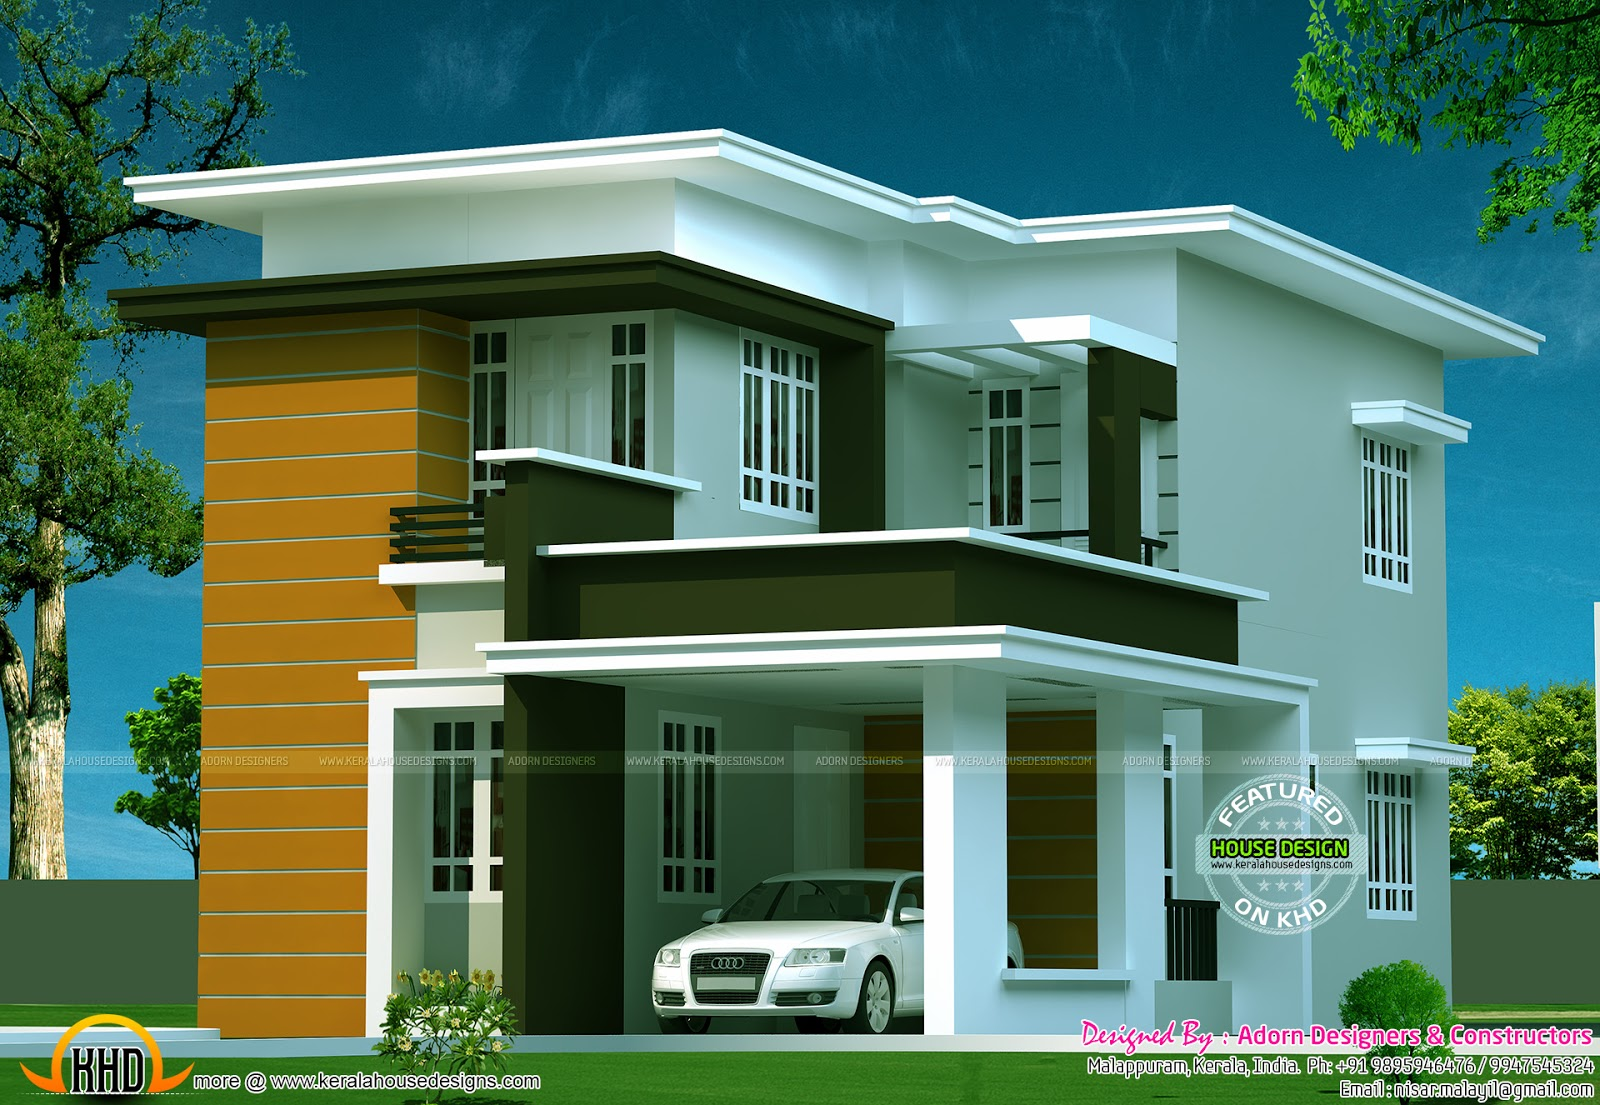 New flat roof house kerala home design and floor plans for Home design plans